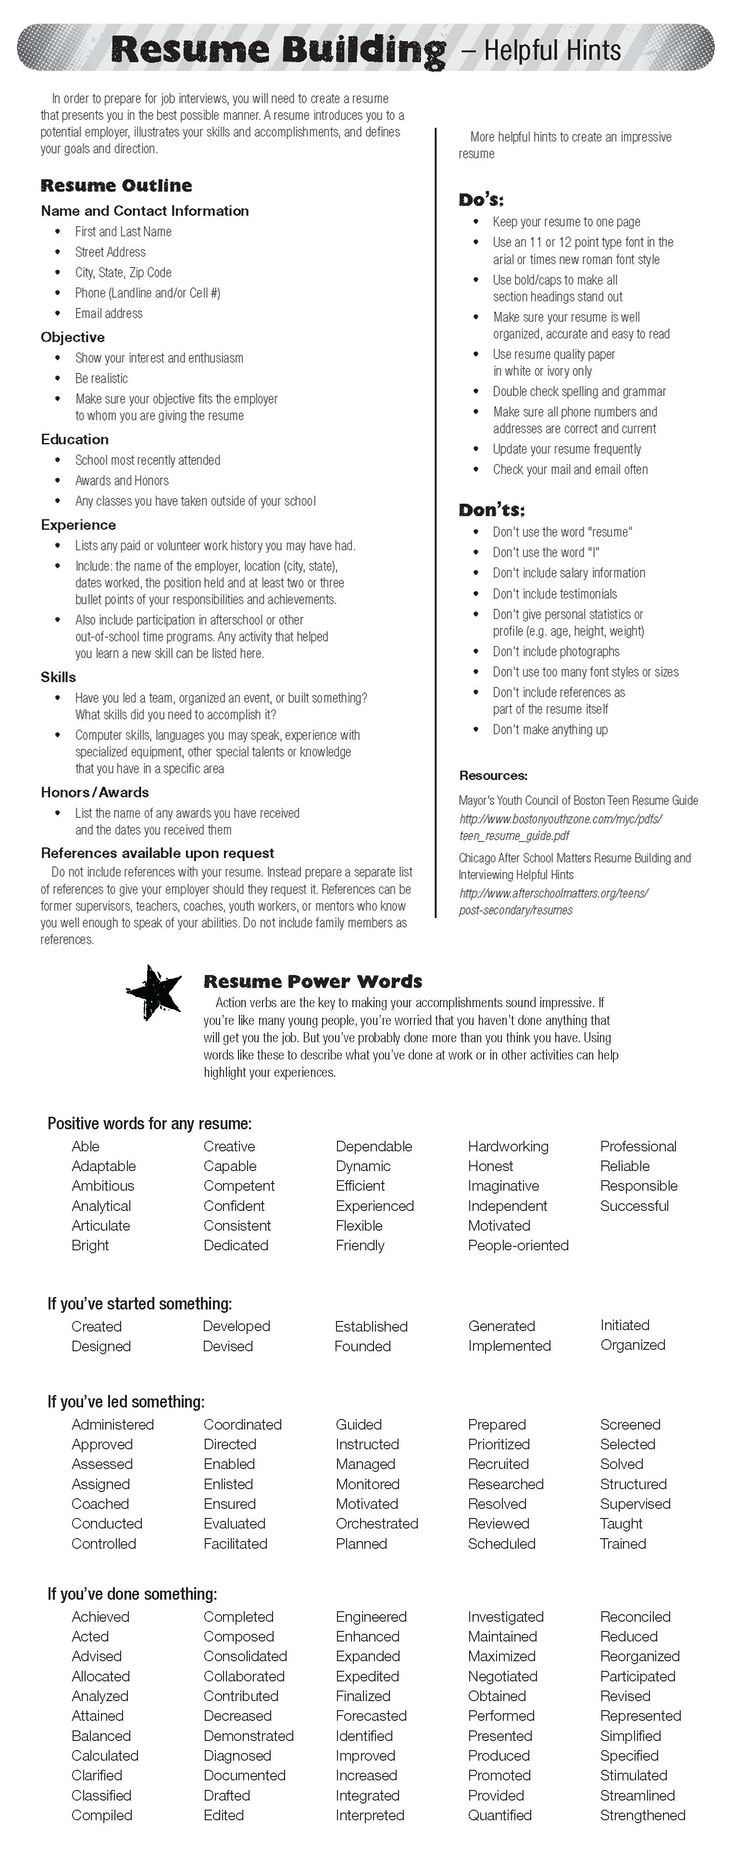 Picnictoimpeachus  Nice  Ideas About Resume On Pinterest  Cv Format Resume  With Inspiring Check Out Todays Resume Building Tips Resume Resumepowerwords With Divine Free Resume Critique Also Objective On Resume Example In Addition Pictures Of Resumes And How To Write A Federal Resume As Well As Reference Page Resume Additionally How To Write An Effective Resume From Pinterestcom With Picnictoimpeachus  Inspiring  Ideas About Resume On Pinterest  Cv Format Resume  With Divine Check Out Todays Resume Building Tips Resume Resumepowerwords And Nice Free Resume Critique Also Objective On Resume Example In Addition Pictures Of Resumes From Pinterestcom